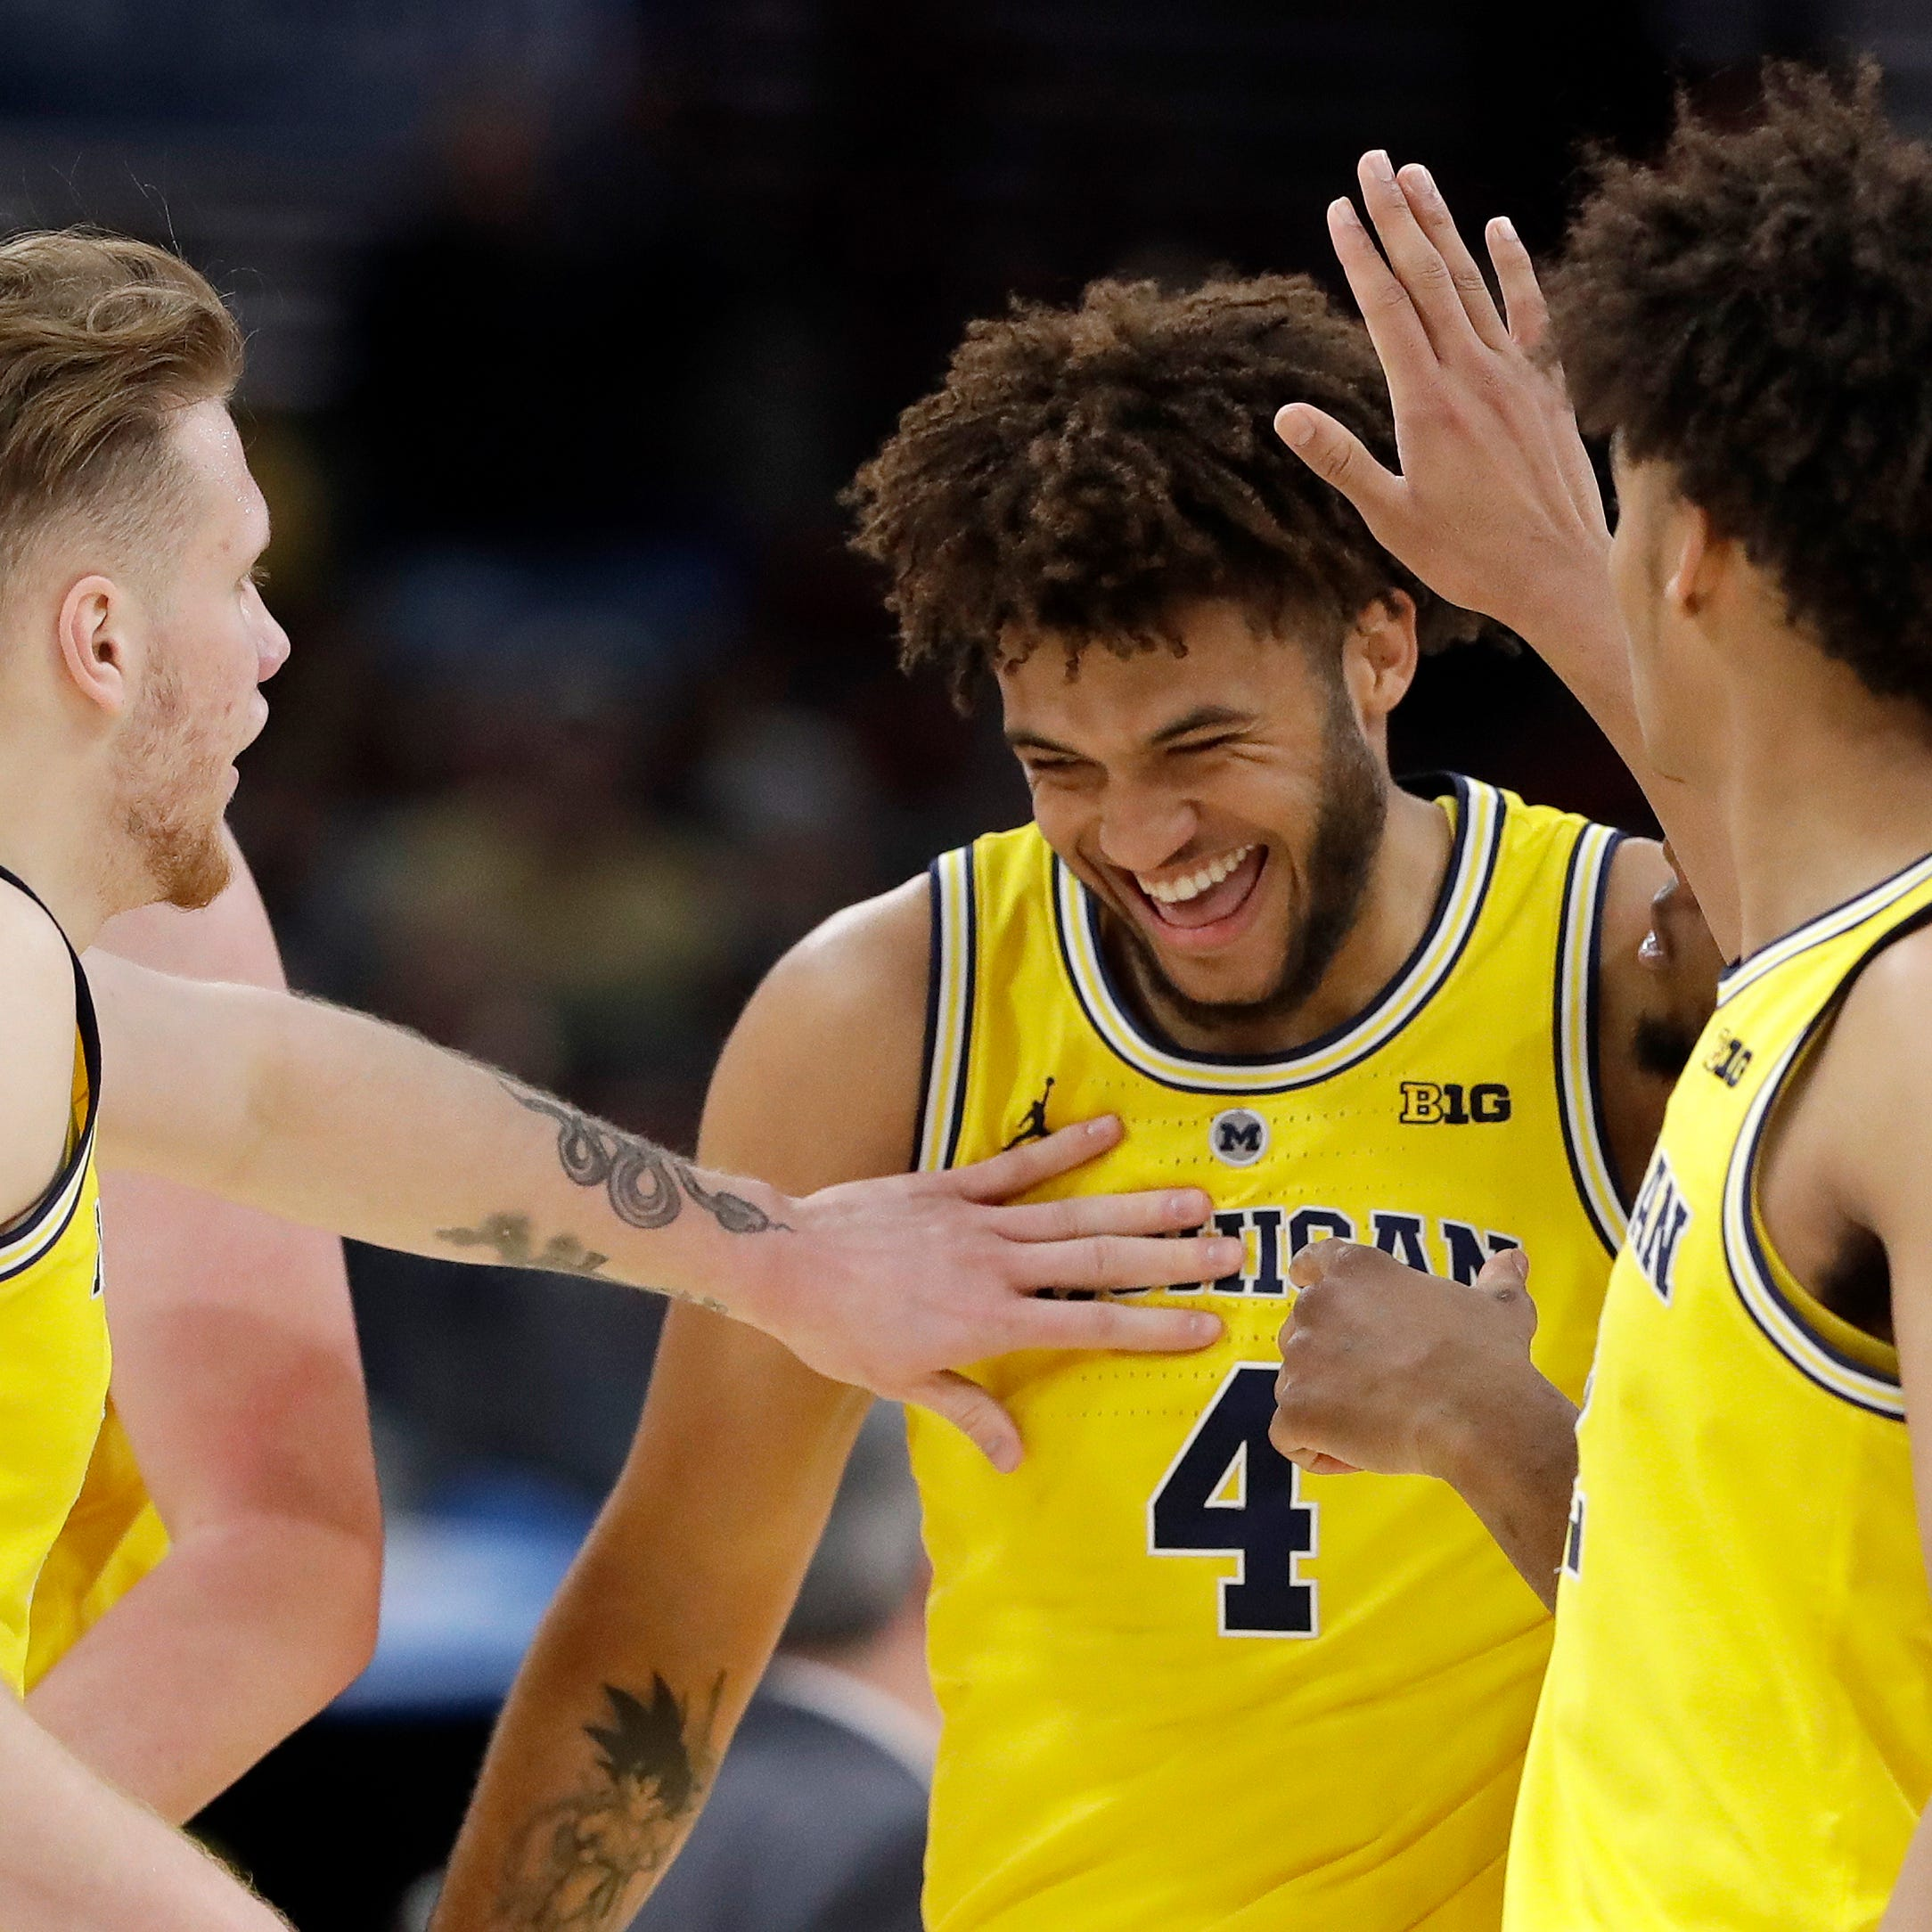 'We're having fun out there': Wolverines bury Gophers to make Big Ten title game